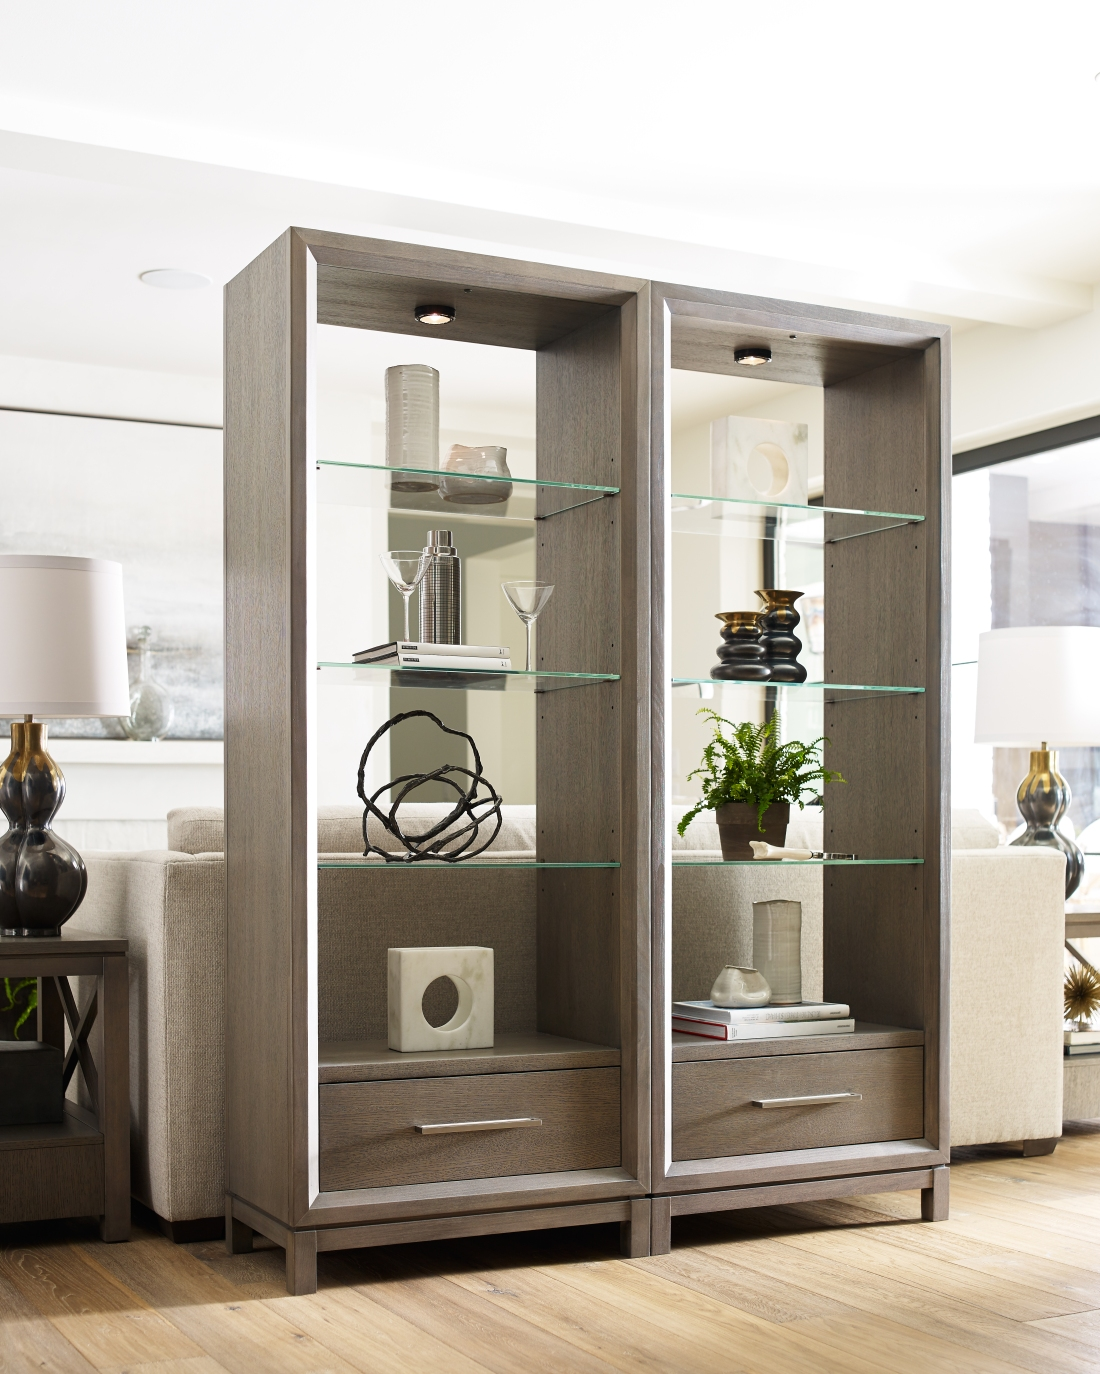 PIER-UNIT-HIGH-LINE-EL-DORADO-FURNITURE-LEGA-68